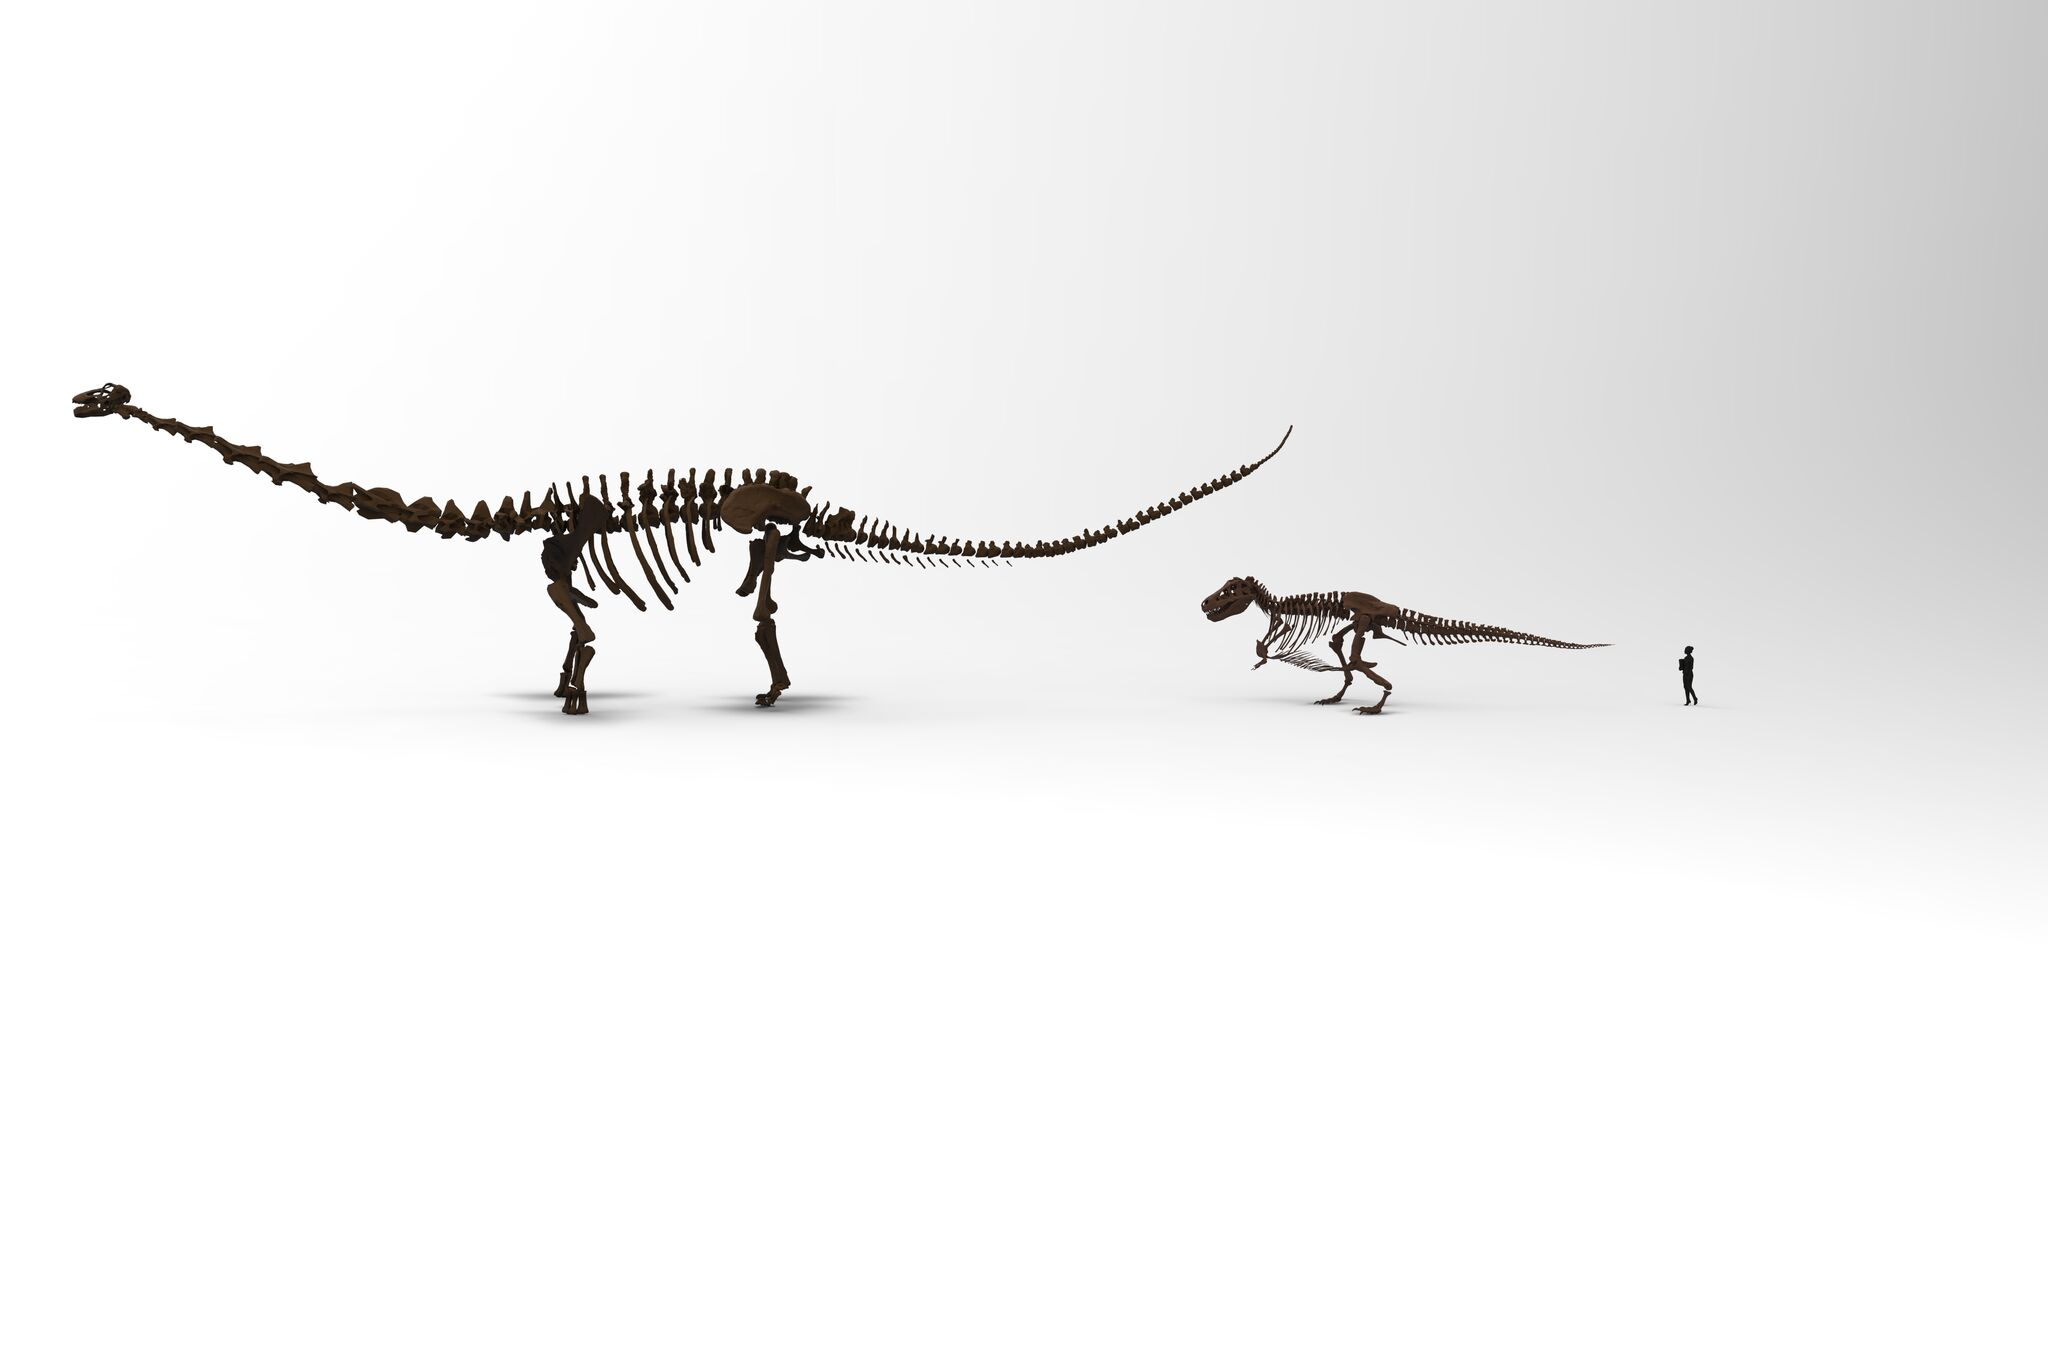 Patagotitan SUE and visitor